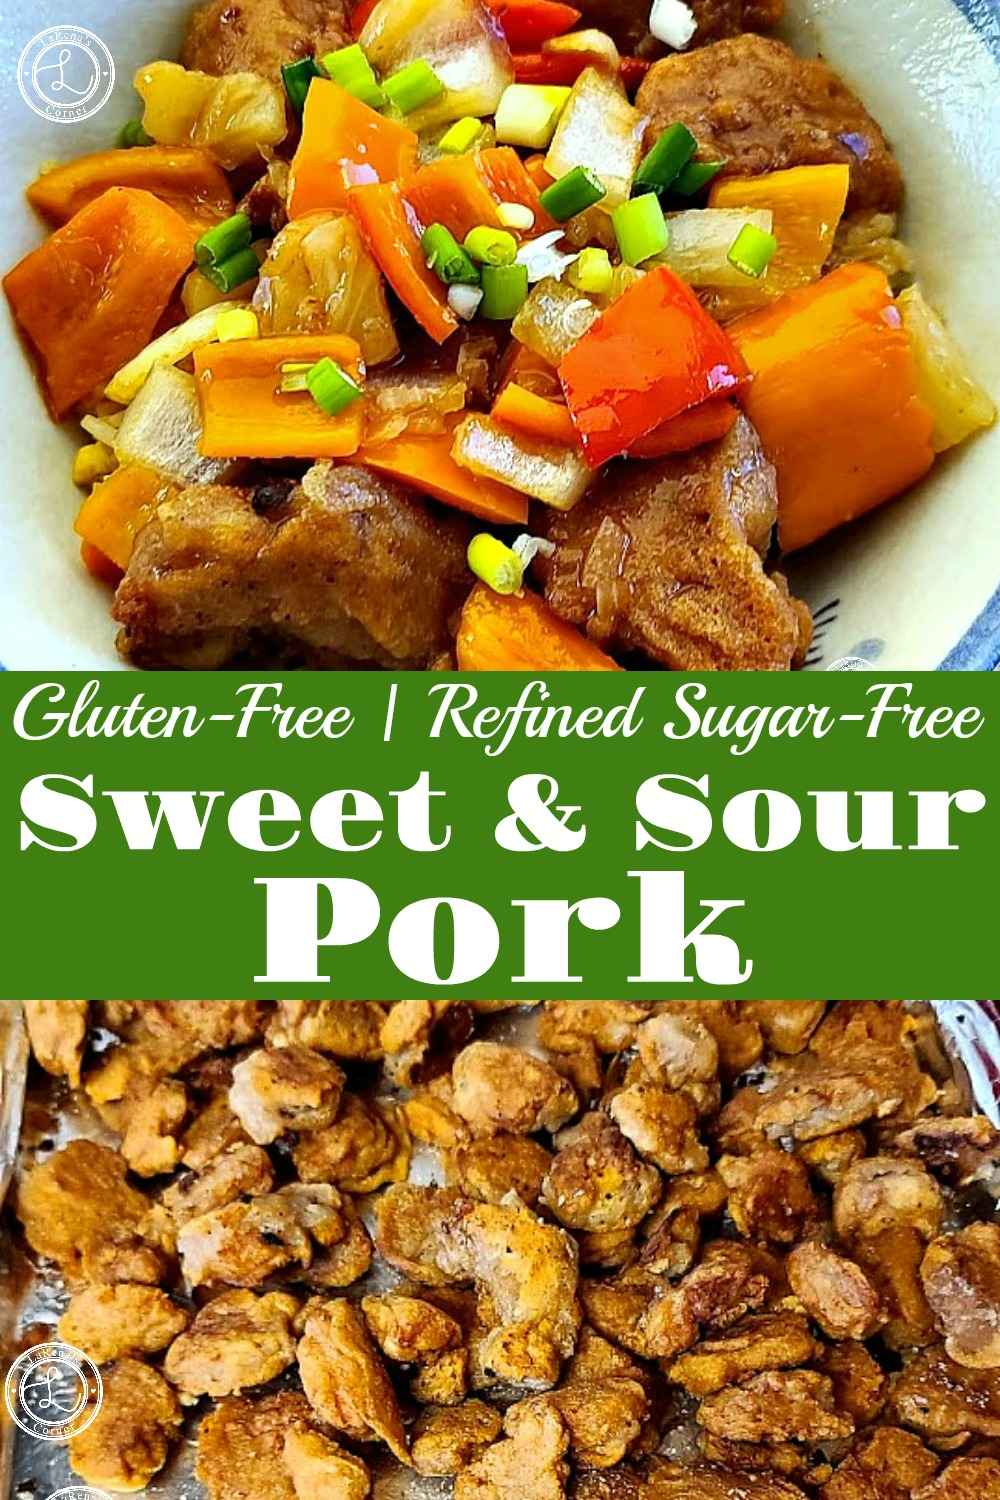 Two Pictures. One of Gluten-Free Fried Pork. Second photo of a bowl of Gluten-Free Sweet & Sour Pork